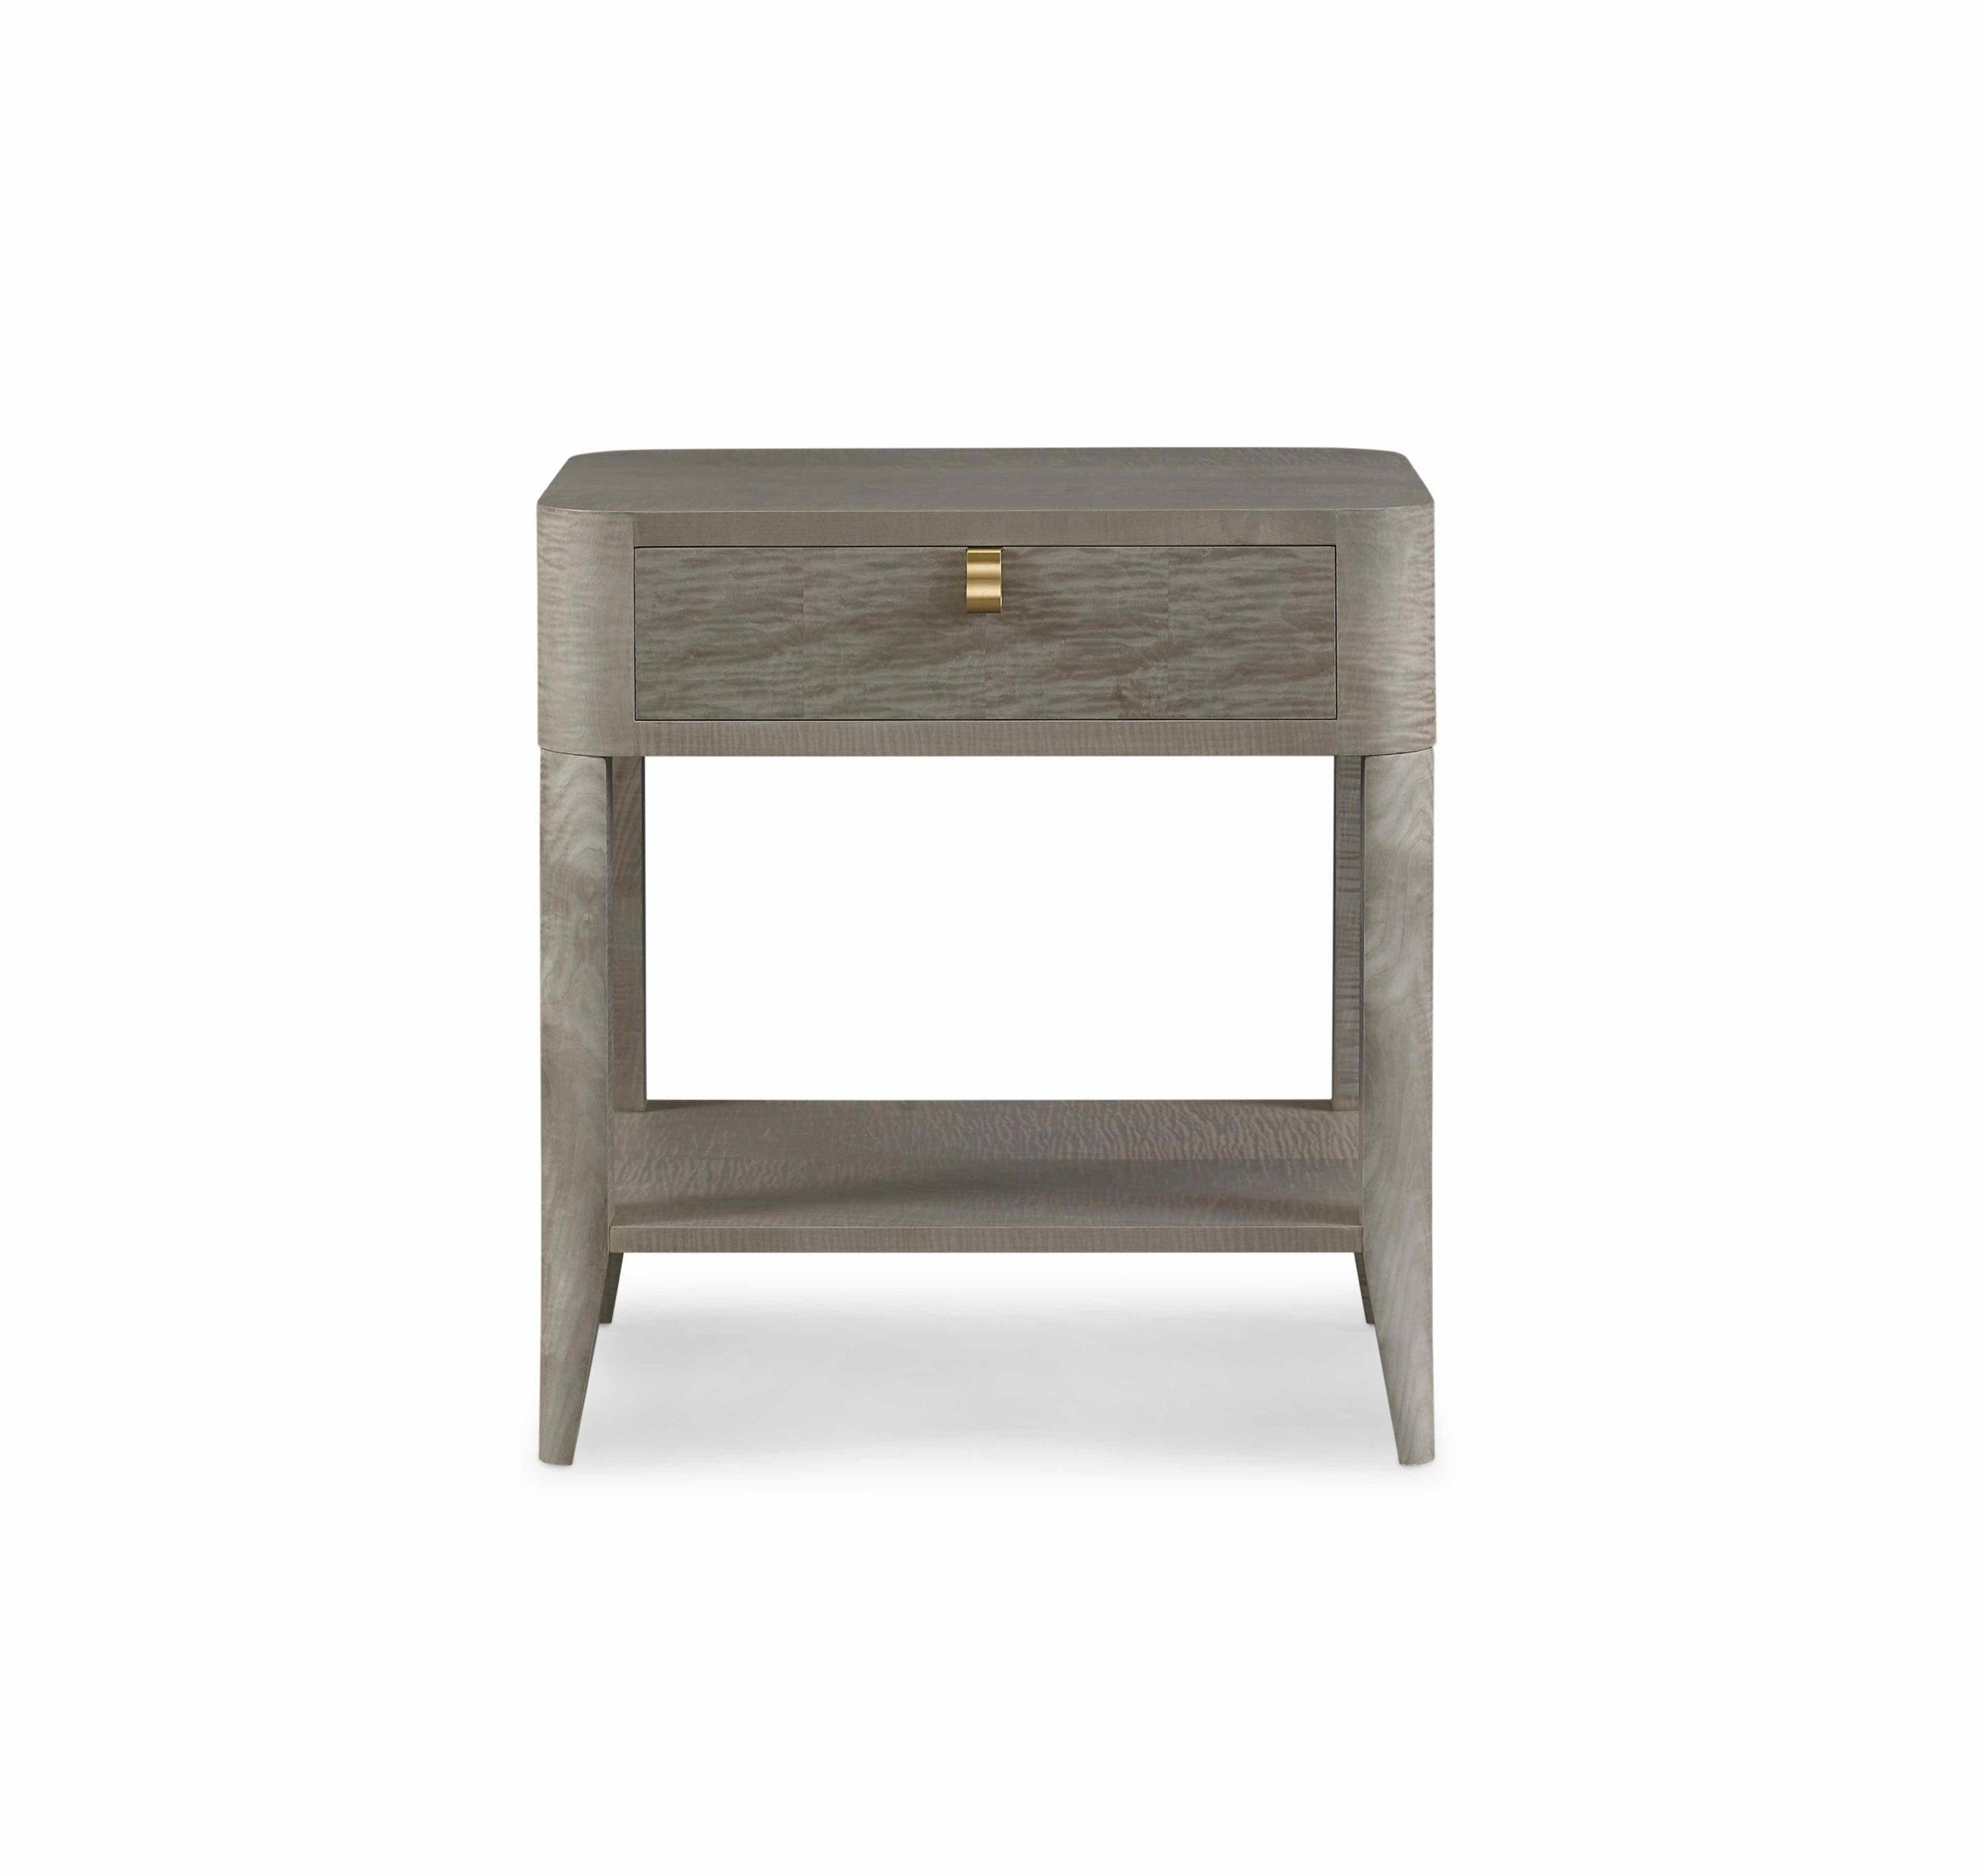 Baker_products_WNWN_rosaline_nightstand_BAA3009_FRONT-scaled-2